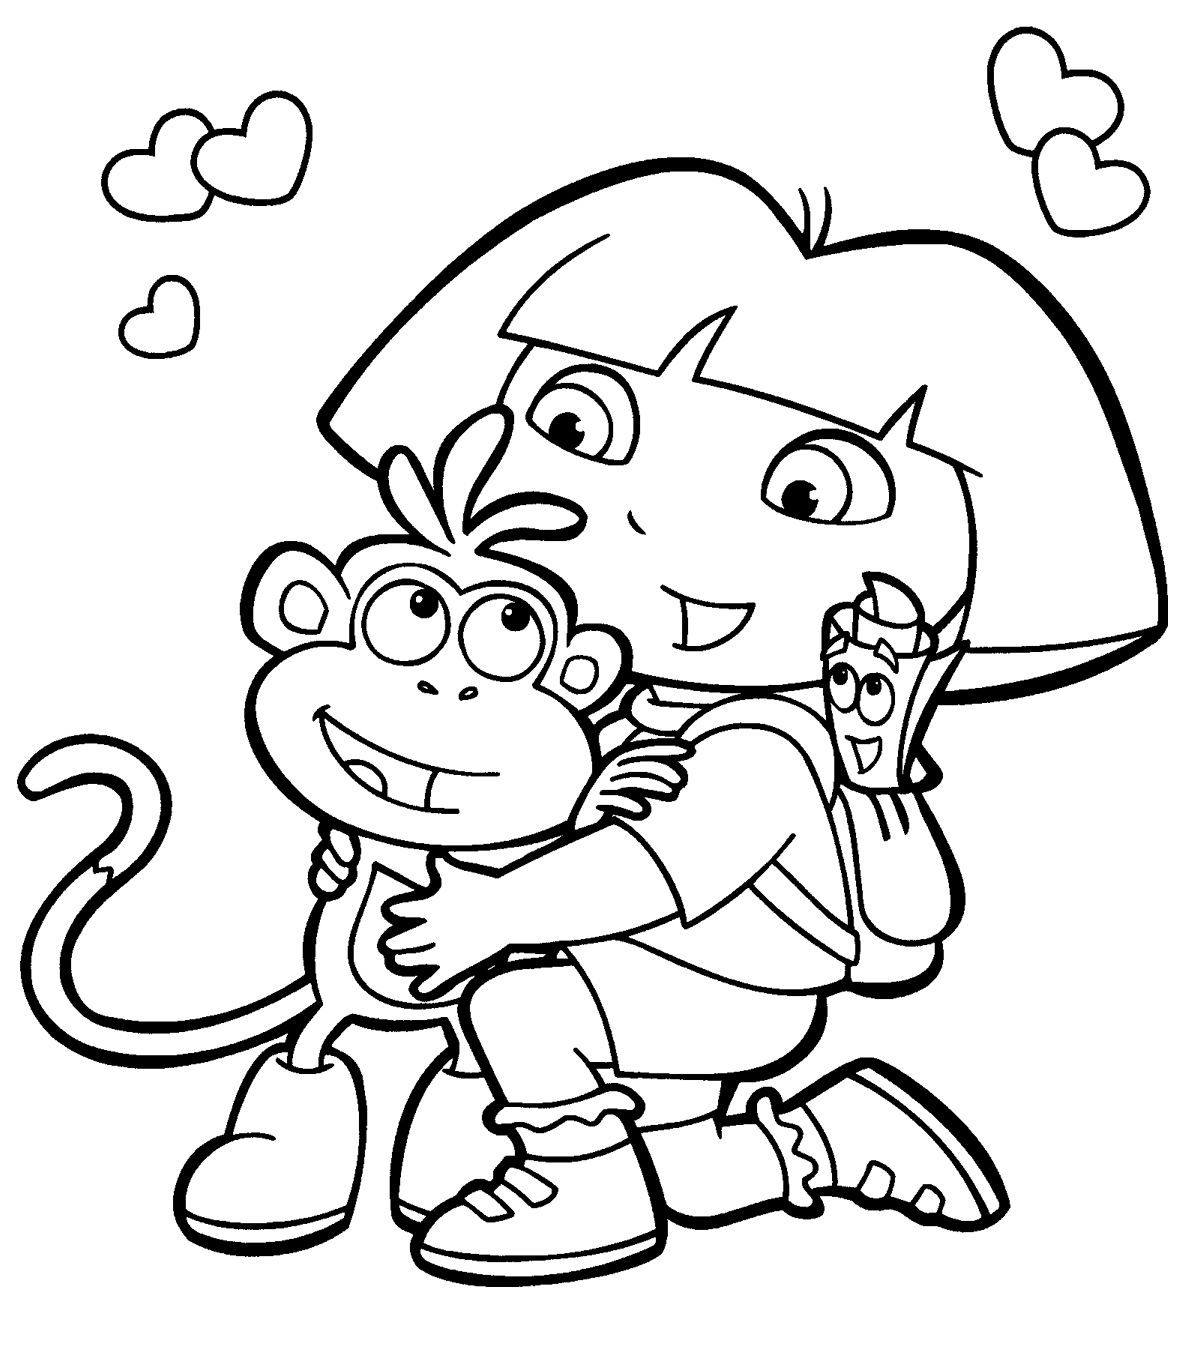 dora the explorer colouring pictures free printable dora the explorer coloring pages for kids the dora explorer pictures colouring